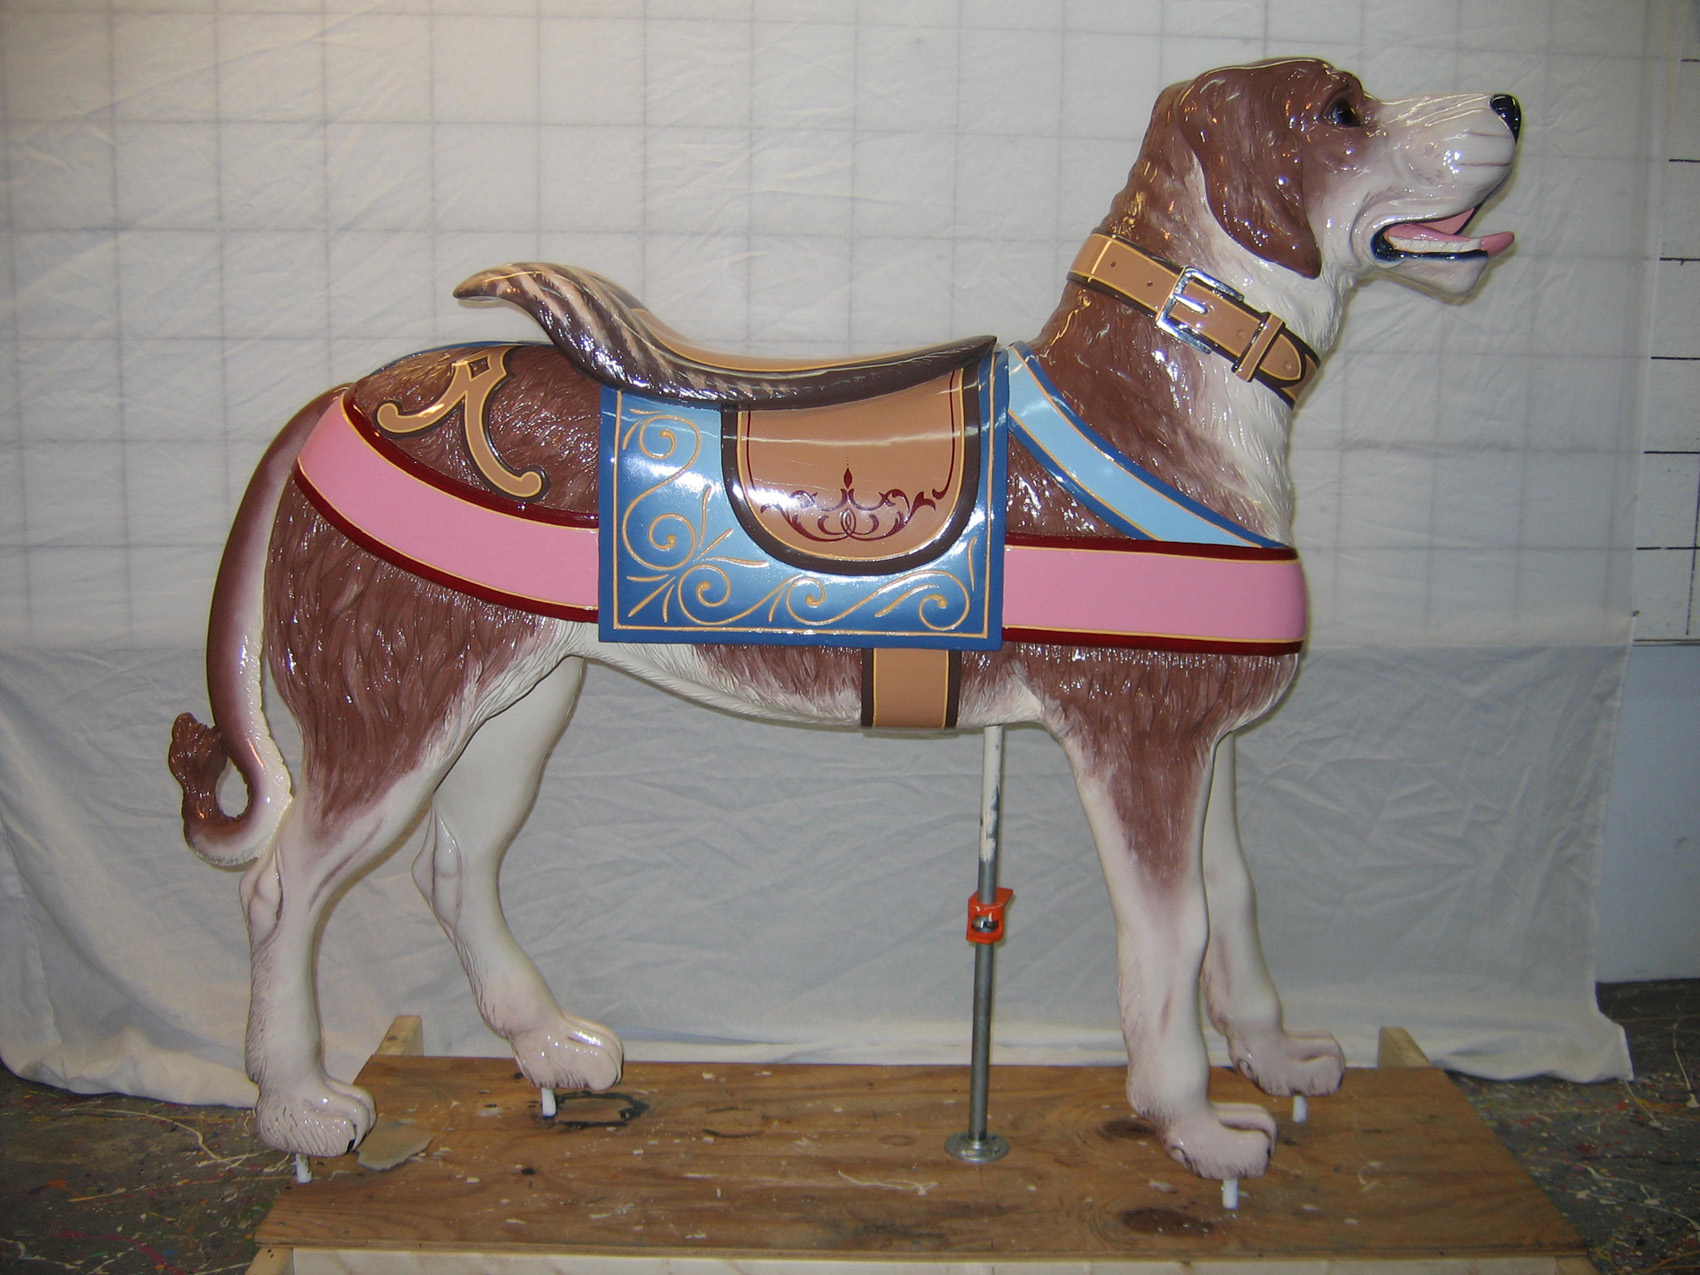 ca-1890-Looff-Broadway-Flying-Horses-carousel-dog-restored-2